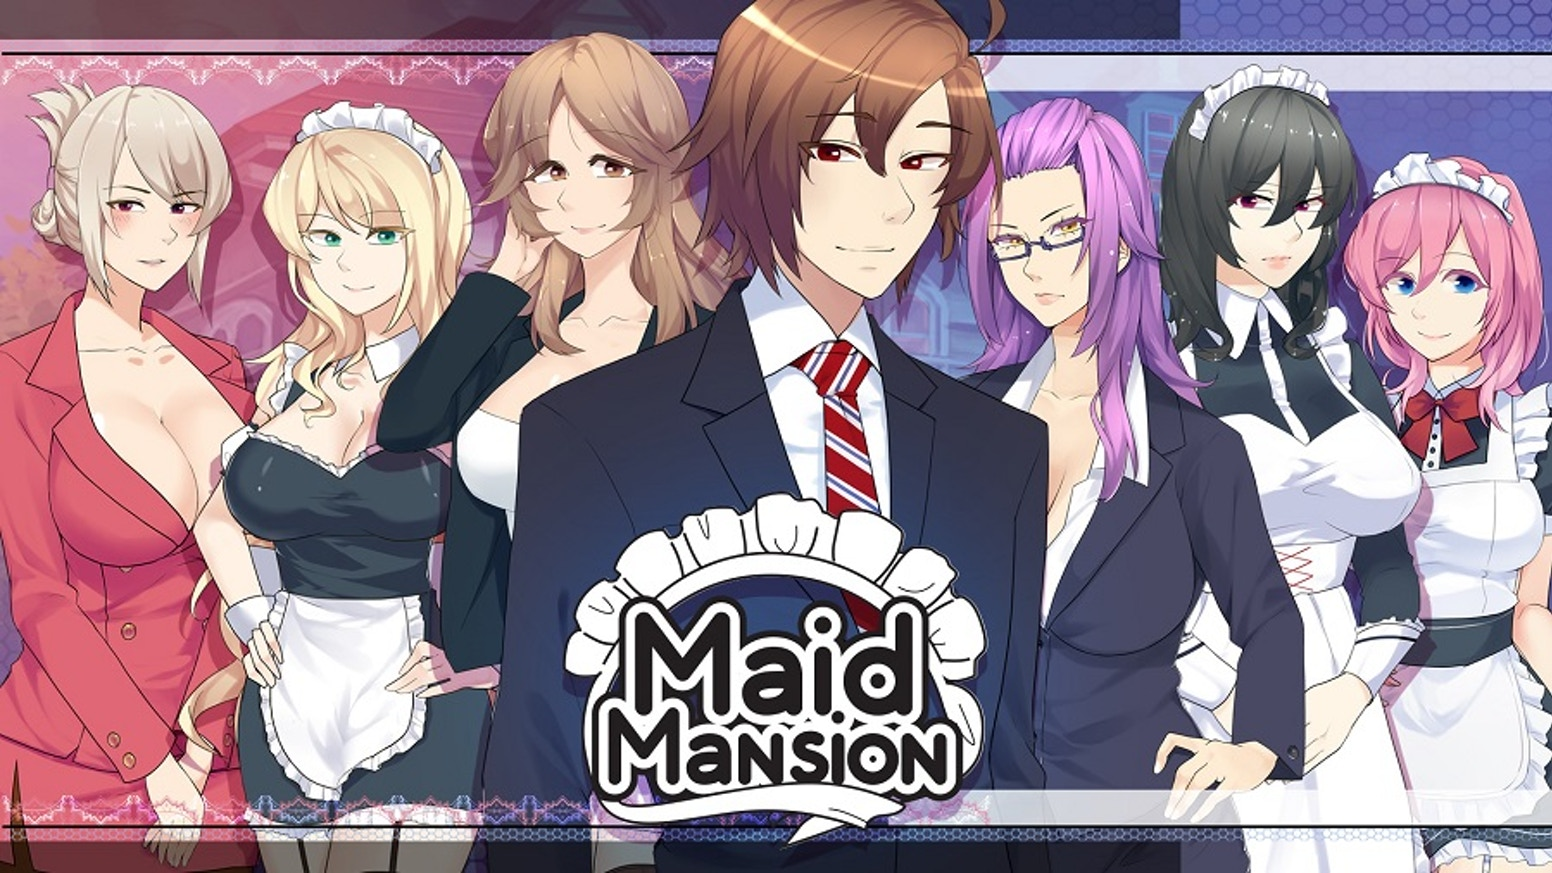 Maid Mansion -- Visual Novel by Crazy Cactus Entertainment